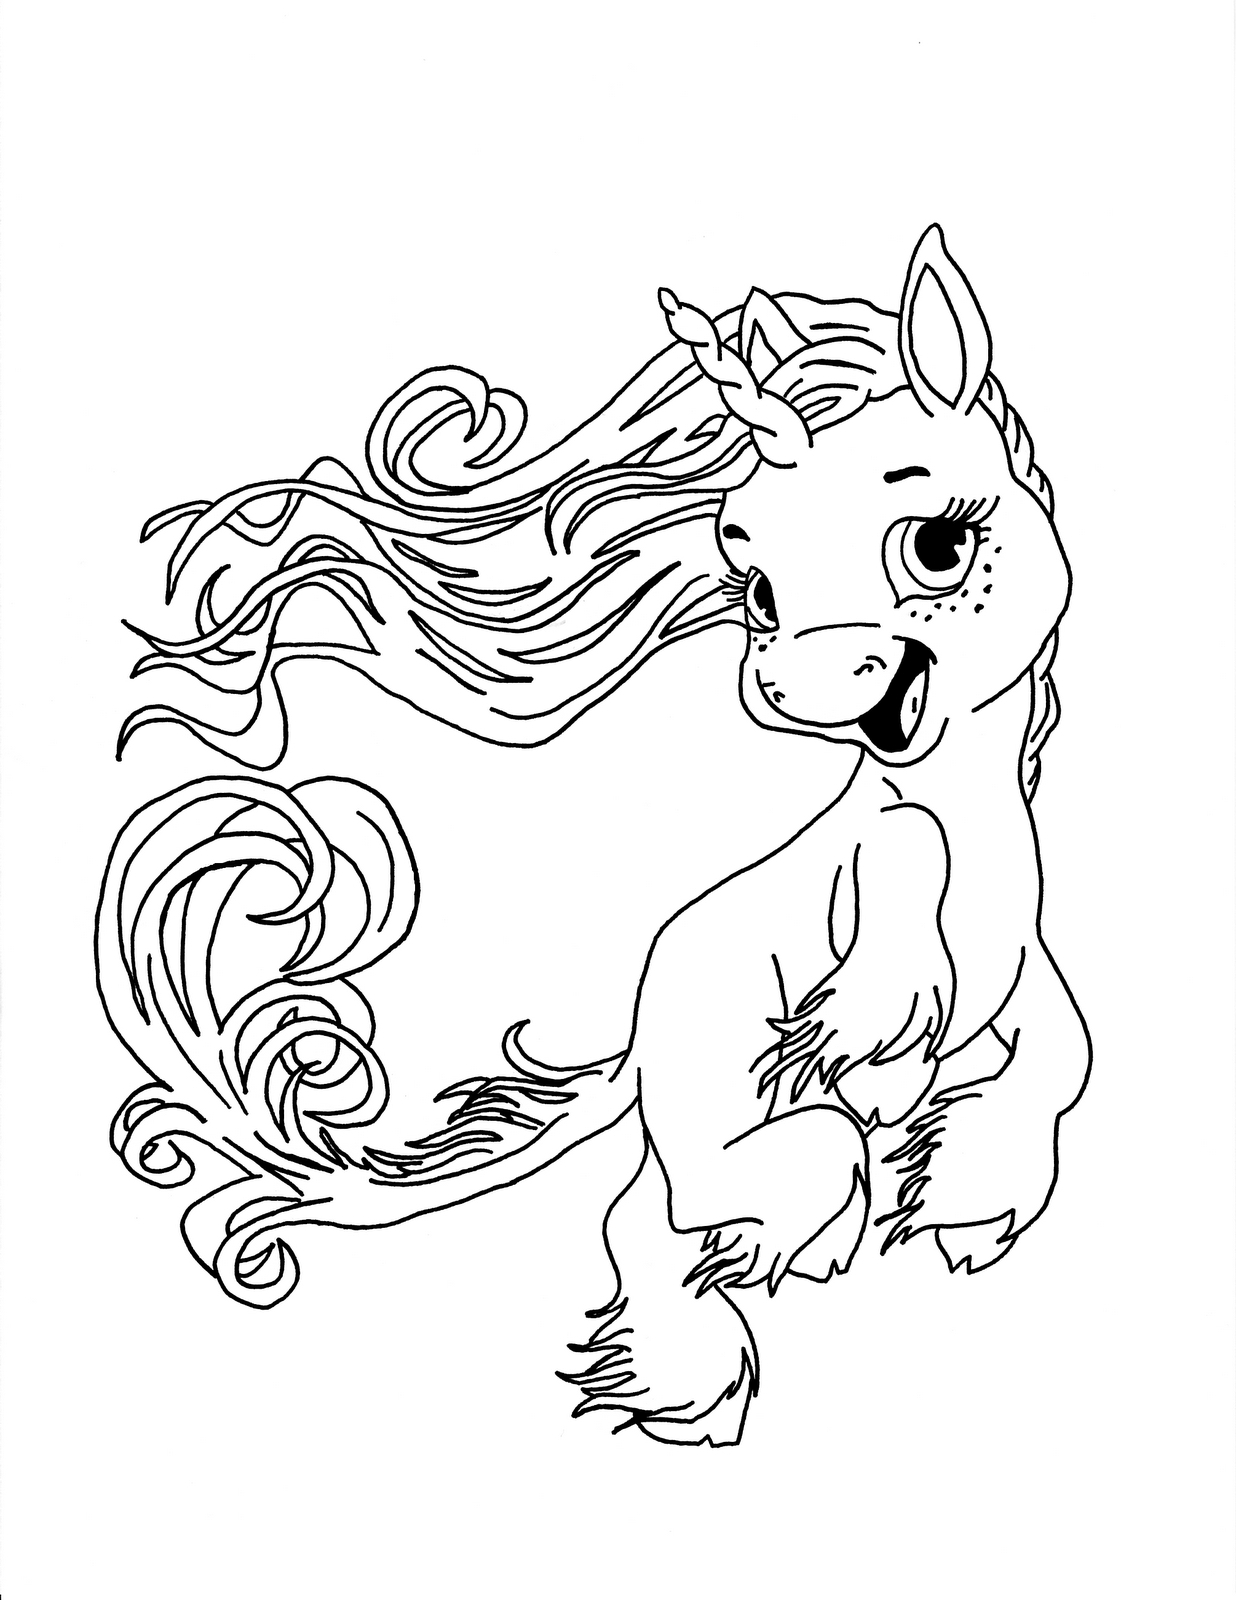 coloring pages for tweens best 15 coloring pages to print for teenagers photos pages for coloring tweens